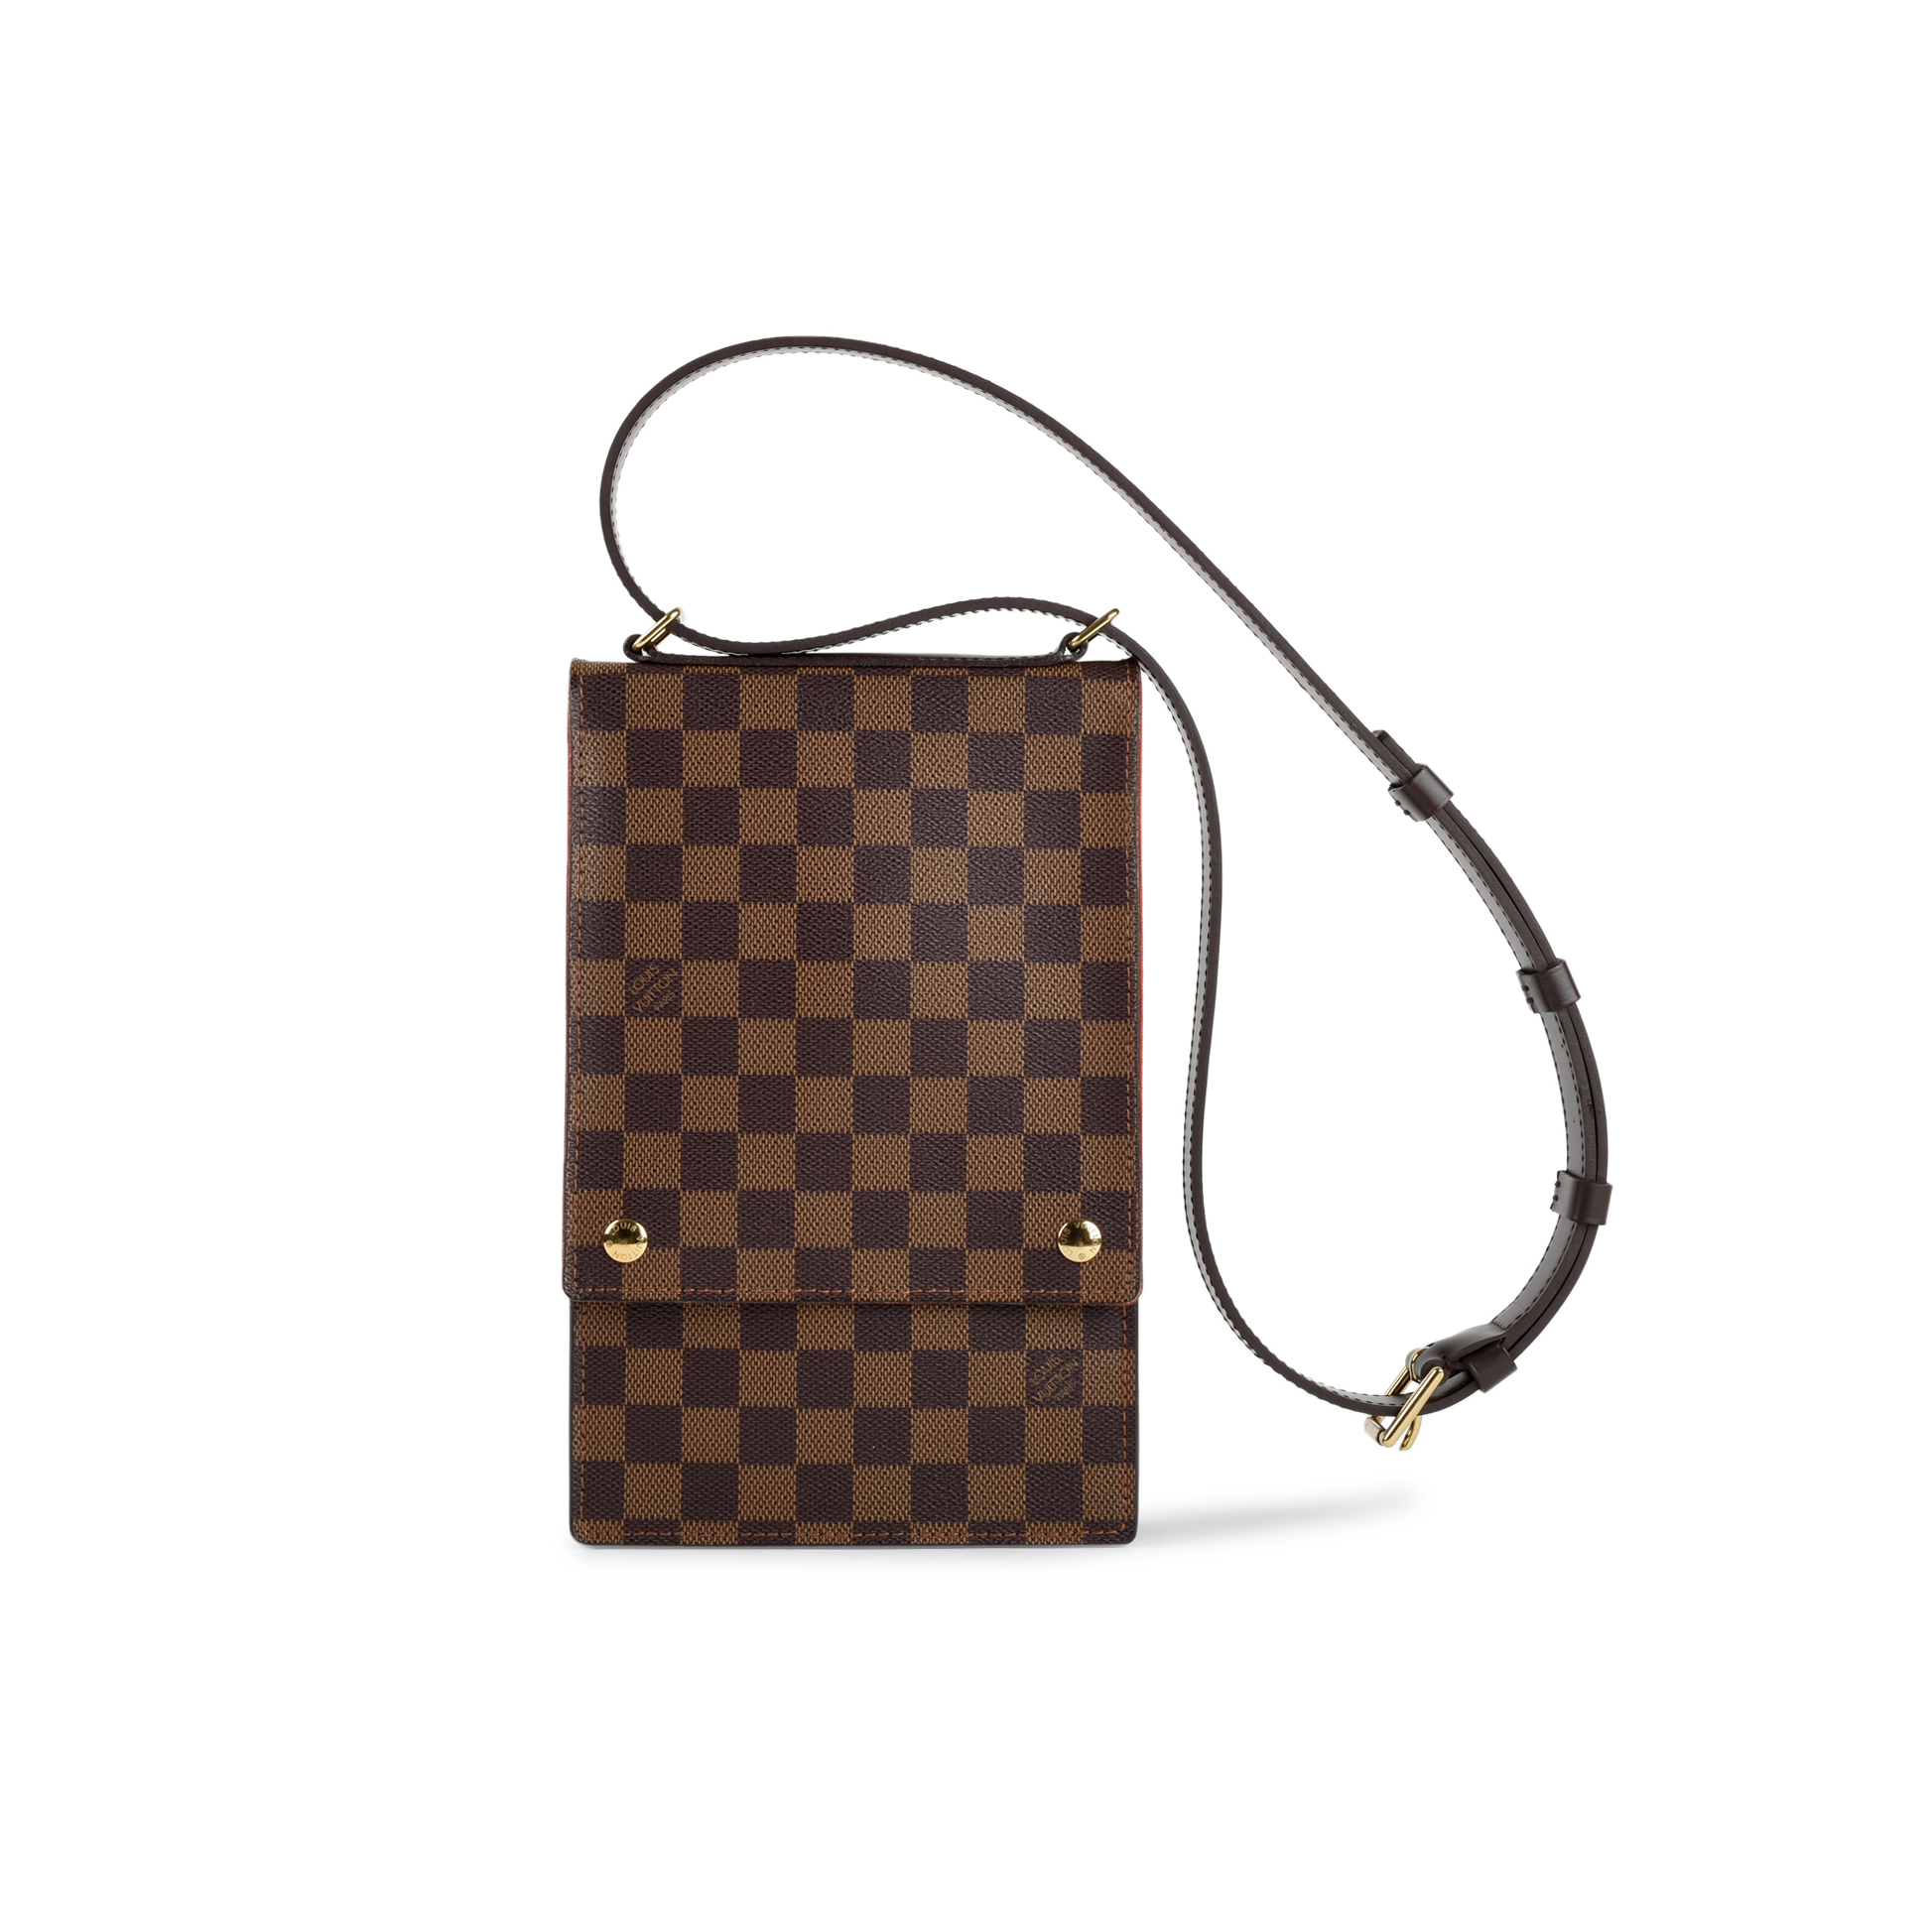 Authentic Second Hand Louis Vuitton Damier Ebene Portobello Crossbody Bag  (PSS-440-00005)  bcc0eb04dccc2